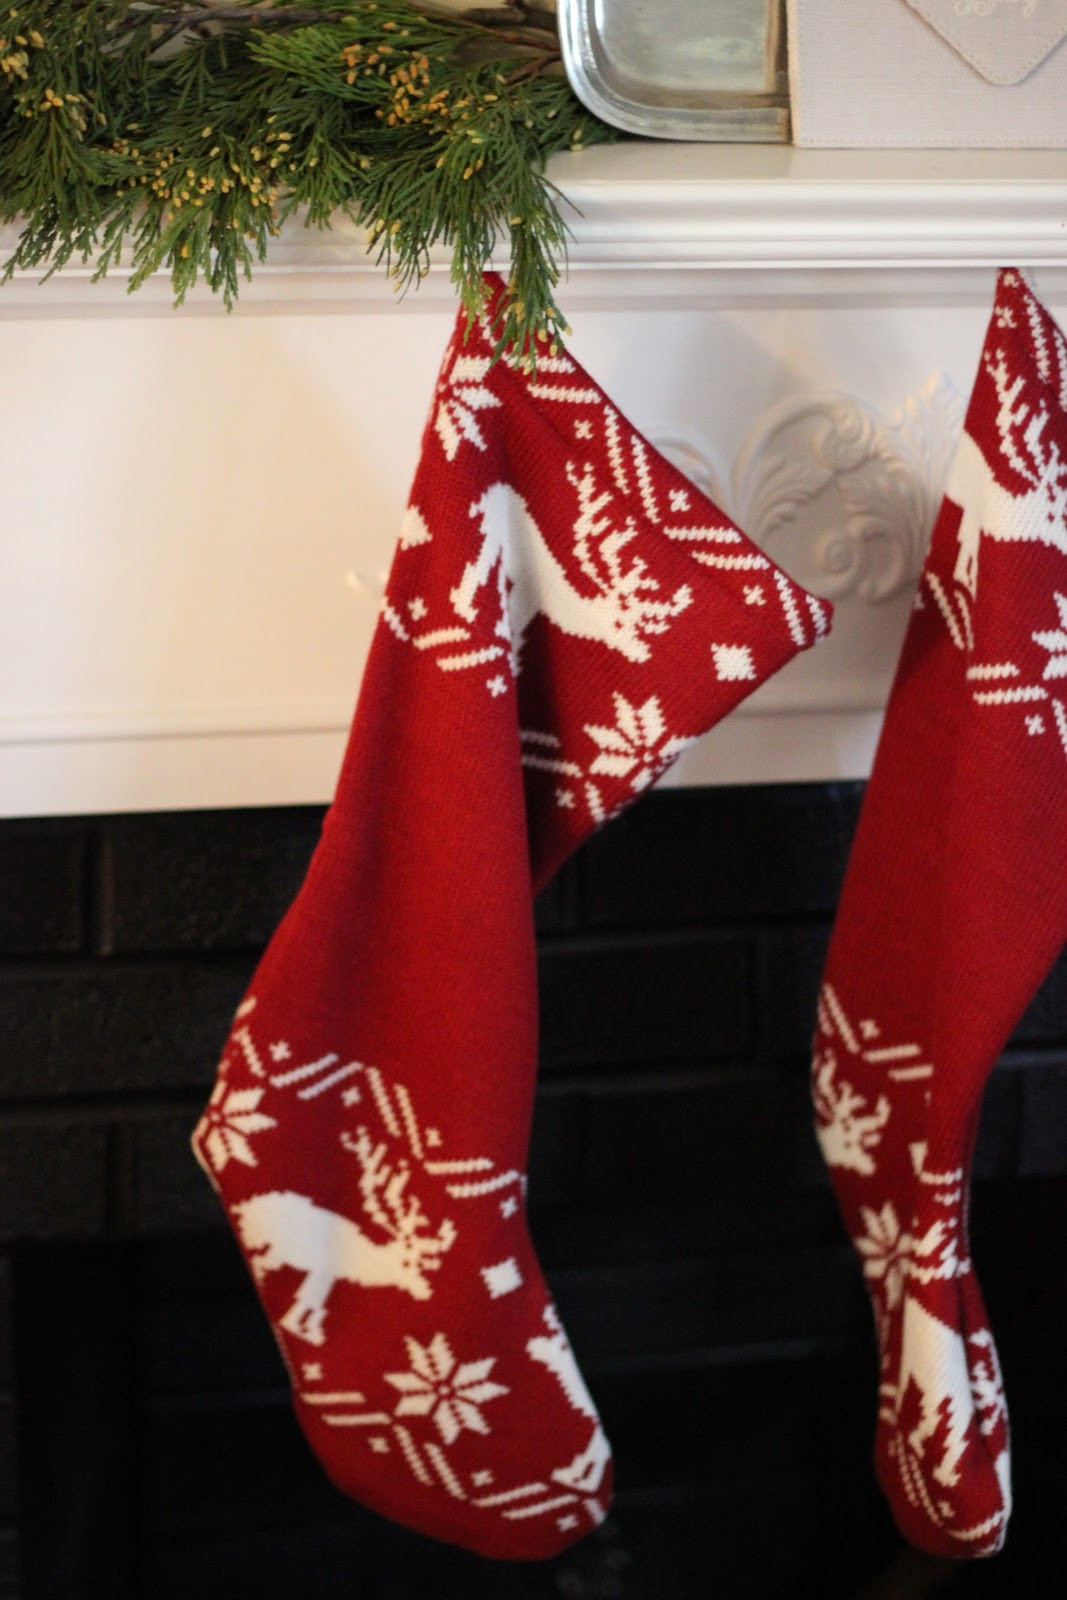 Best ideas about Christmas Stockings DIY . Save or Pin Jenny Steffens Hobick Easy DIY Homemade Stockings Now.